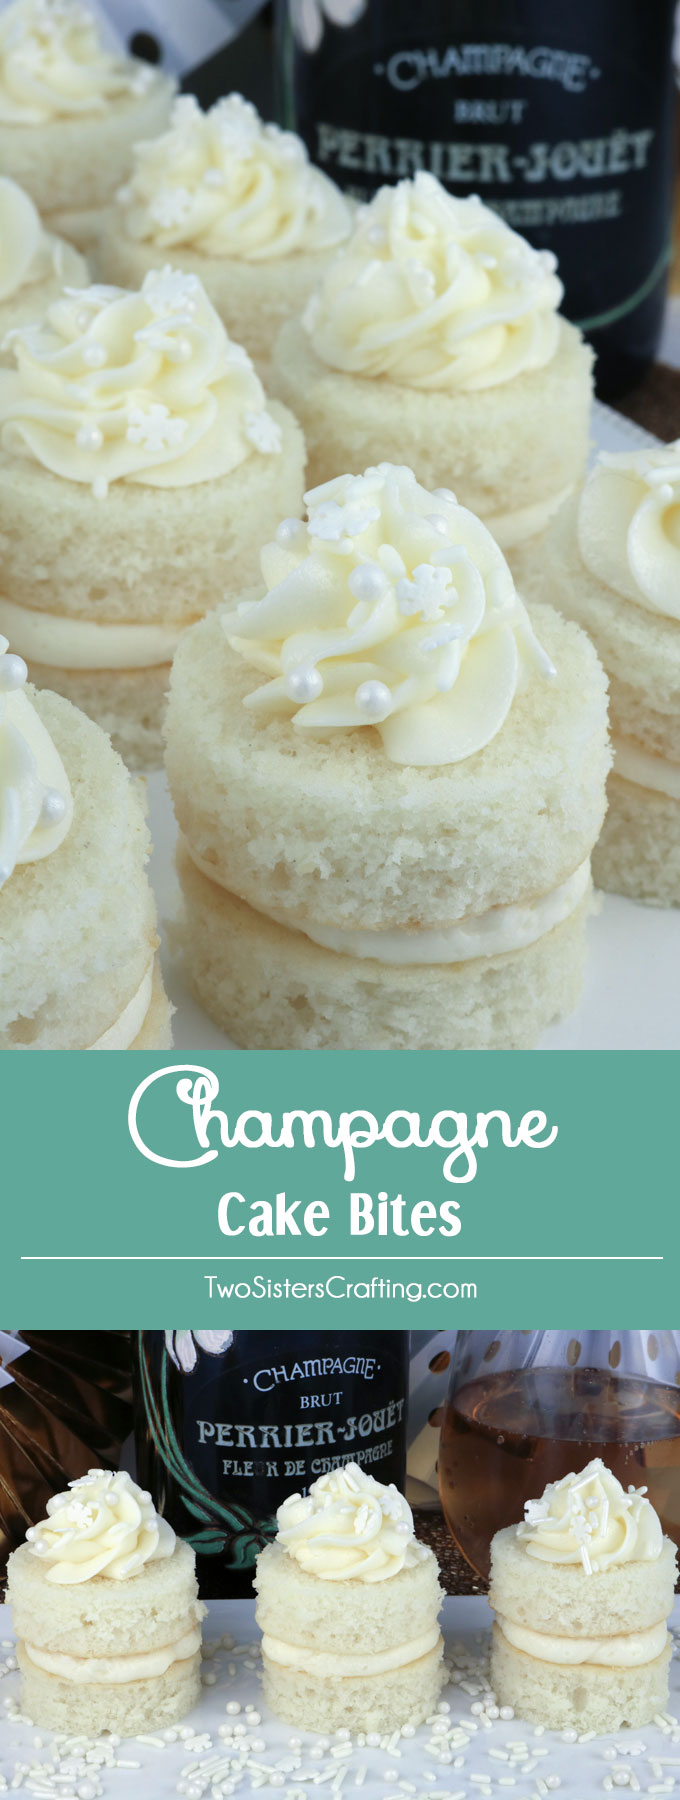 Champagne Cake Bites - a unique take on a traditional cupcake this fun dessert will wow the guests at your next party or grown-ups only family get-together.  A great dessert idea and a unique take on a cupcake. Super easy to make, they will be a big hit on your Christmas dessert table or at your New Year's Eve Party. Pin this fun Holiday treat for later and follow us for more Christmas food ideas. #ChristmasDesserts #ChristmasTreats #NewYearsEveFood